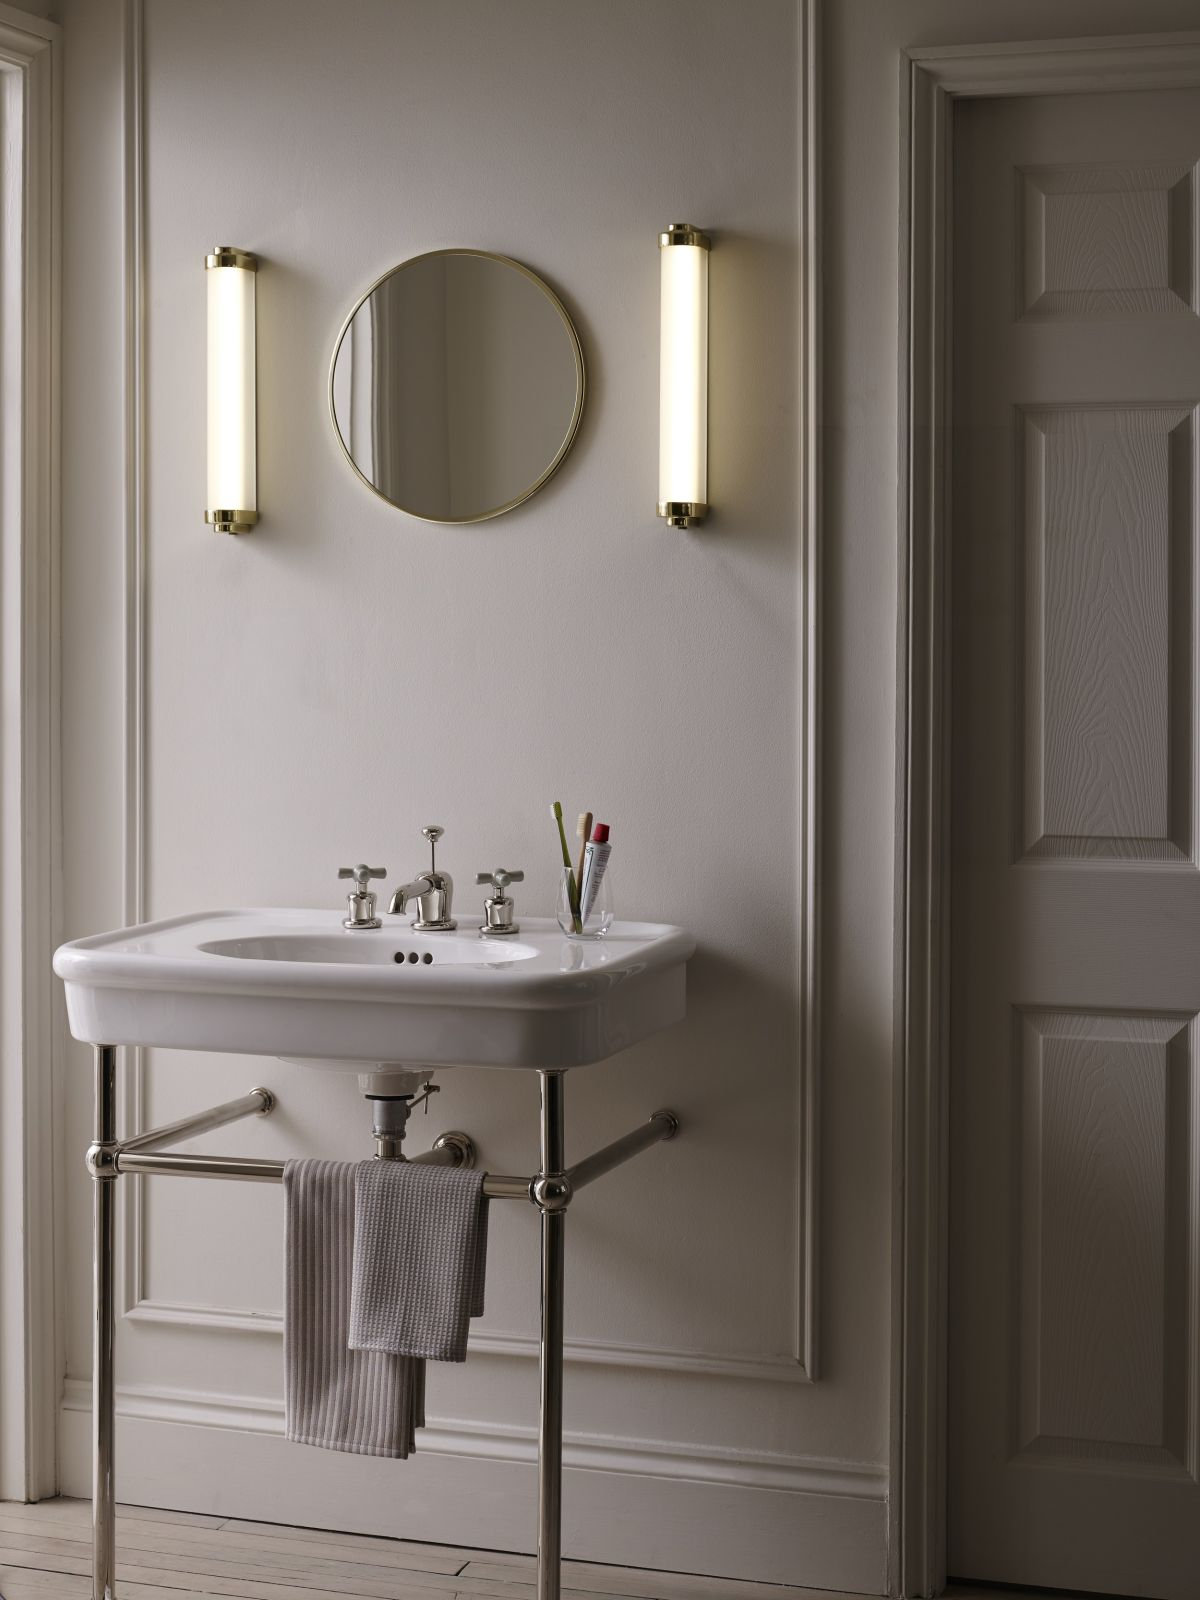 15 Bathroom Lighting Ideas To Brighten Your Space Beautifully Real Homes